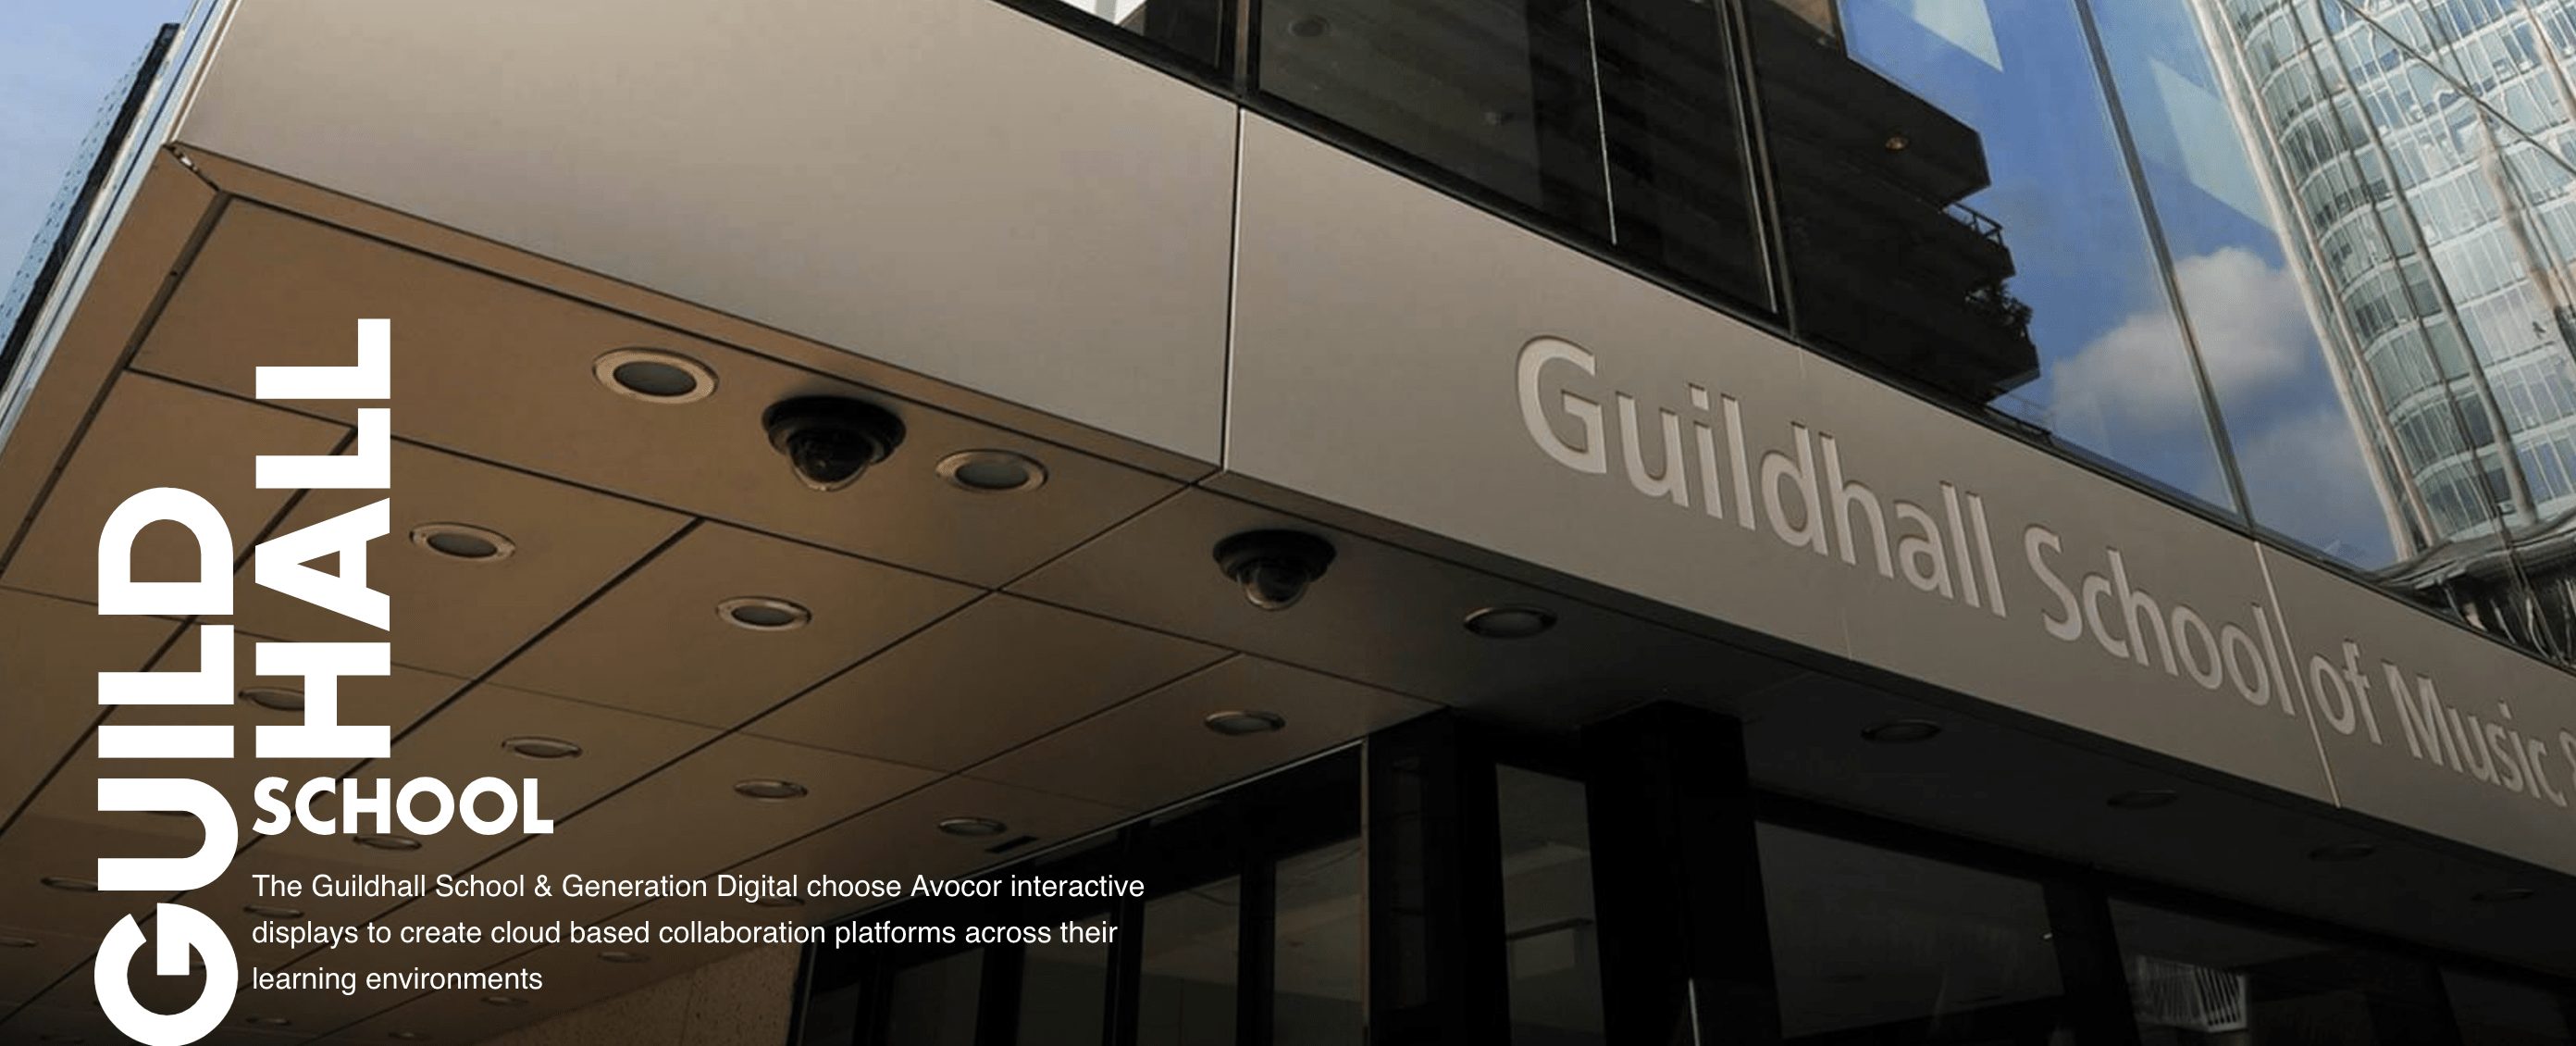 Guildhall School Customer Case Study - Cloud Collaboration and Learning Platform with Avocor Displays